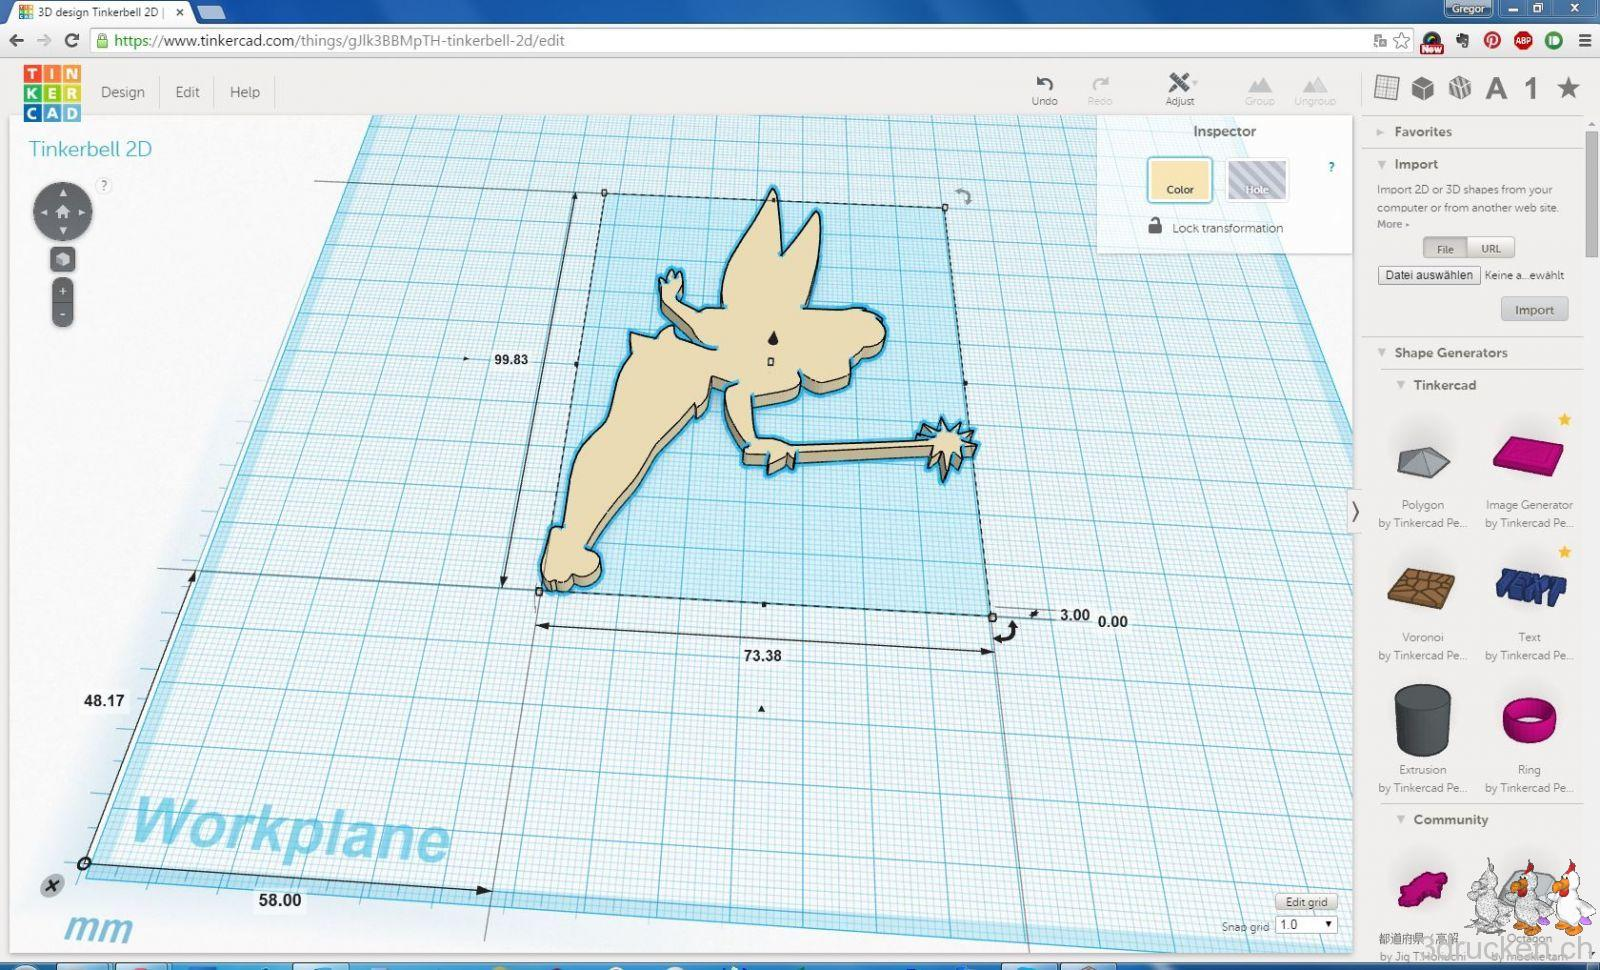 tinkercad_tinkerbell_imported